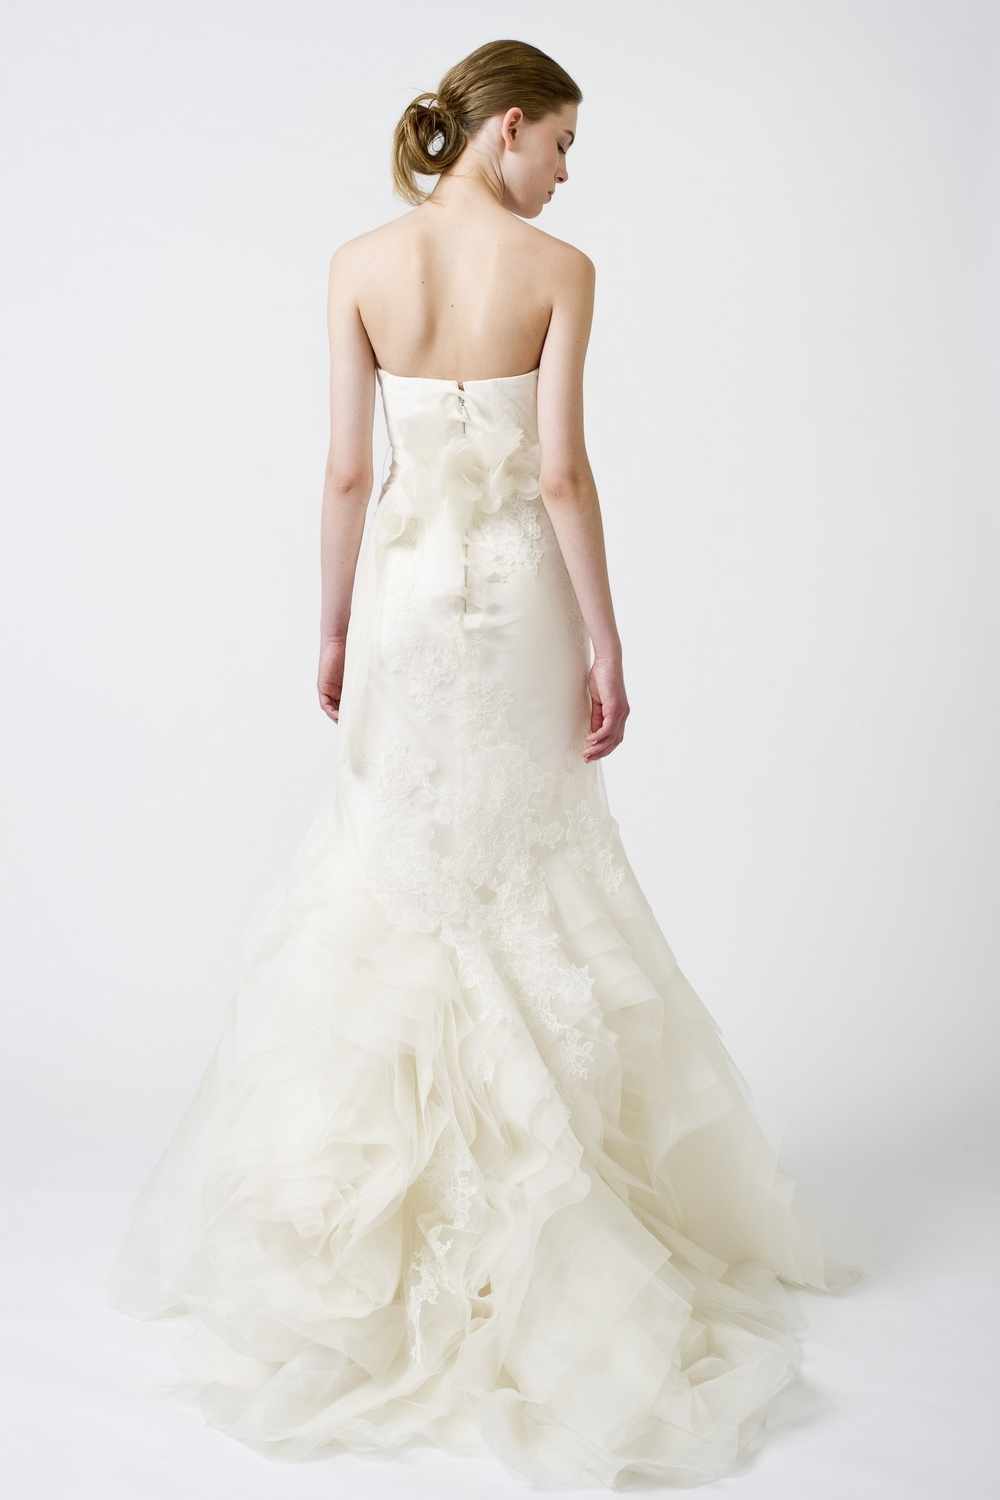 11-spring-2011-wedding-dress-vera-wang-lace-applique-drop-waist-back.full